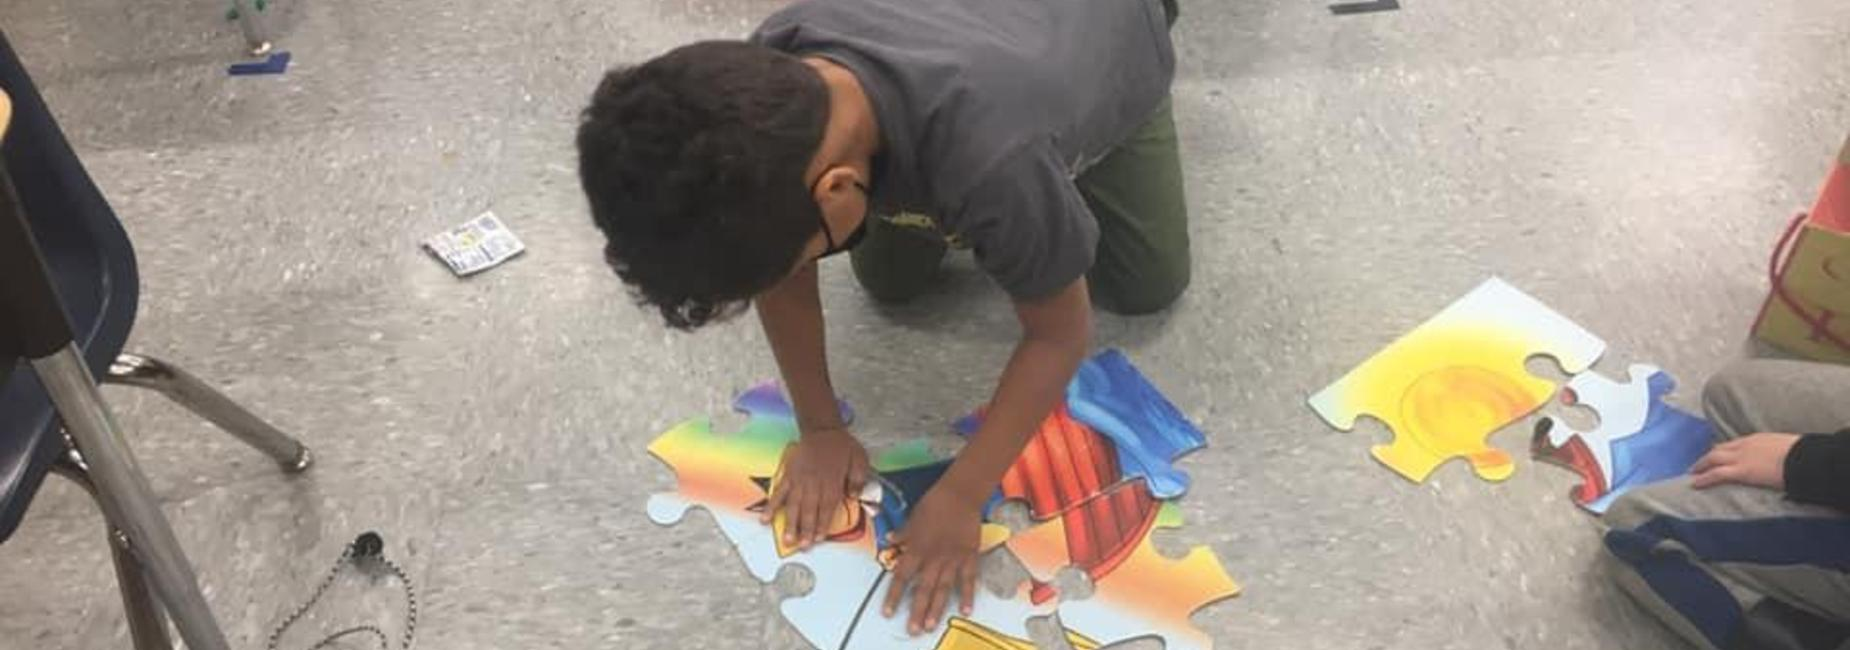 a child puts together a puzzle